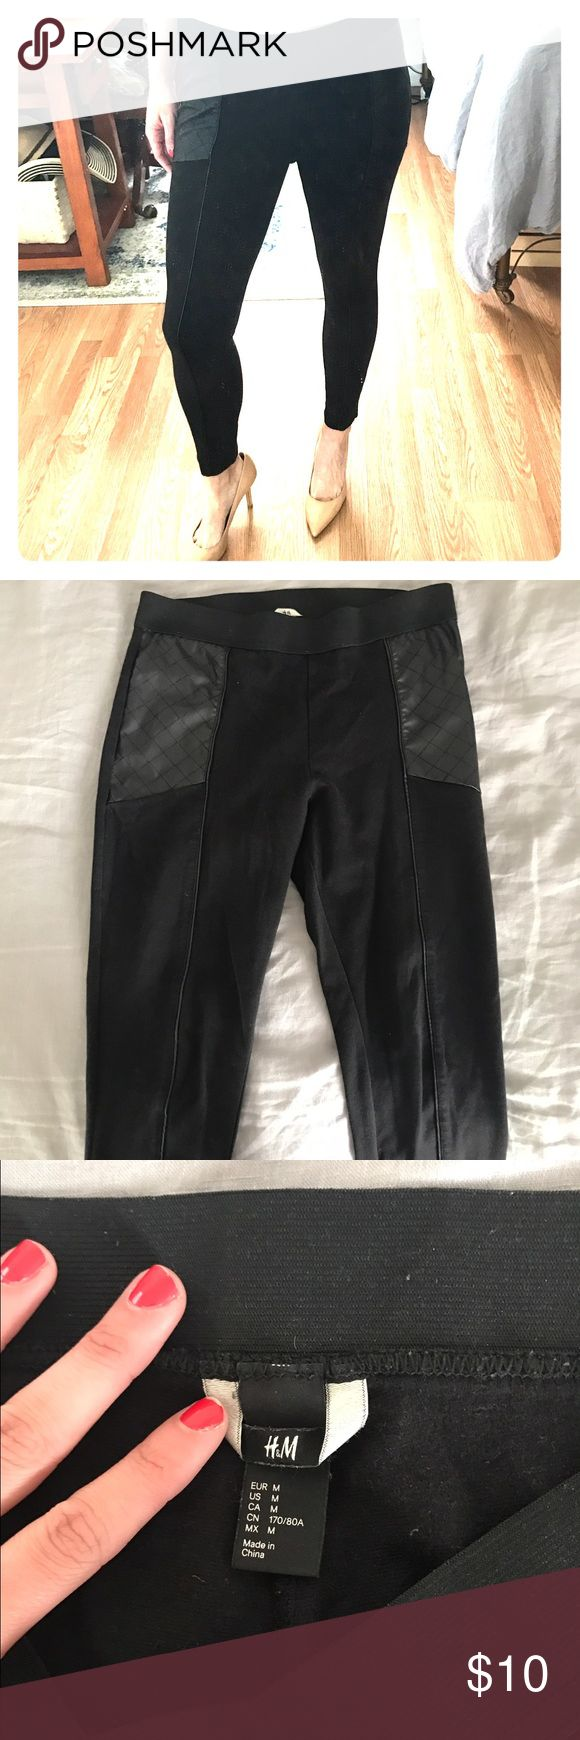 """h&m leggings with leather comfy stretch leggings with two front leather panels and leather seam down front length of the leg. elastic waistband. size medium. (i'm 5'8"""", size 4-6) H&M Pants Leggings"""